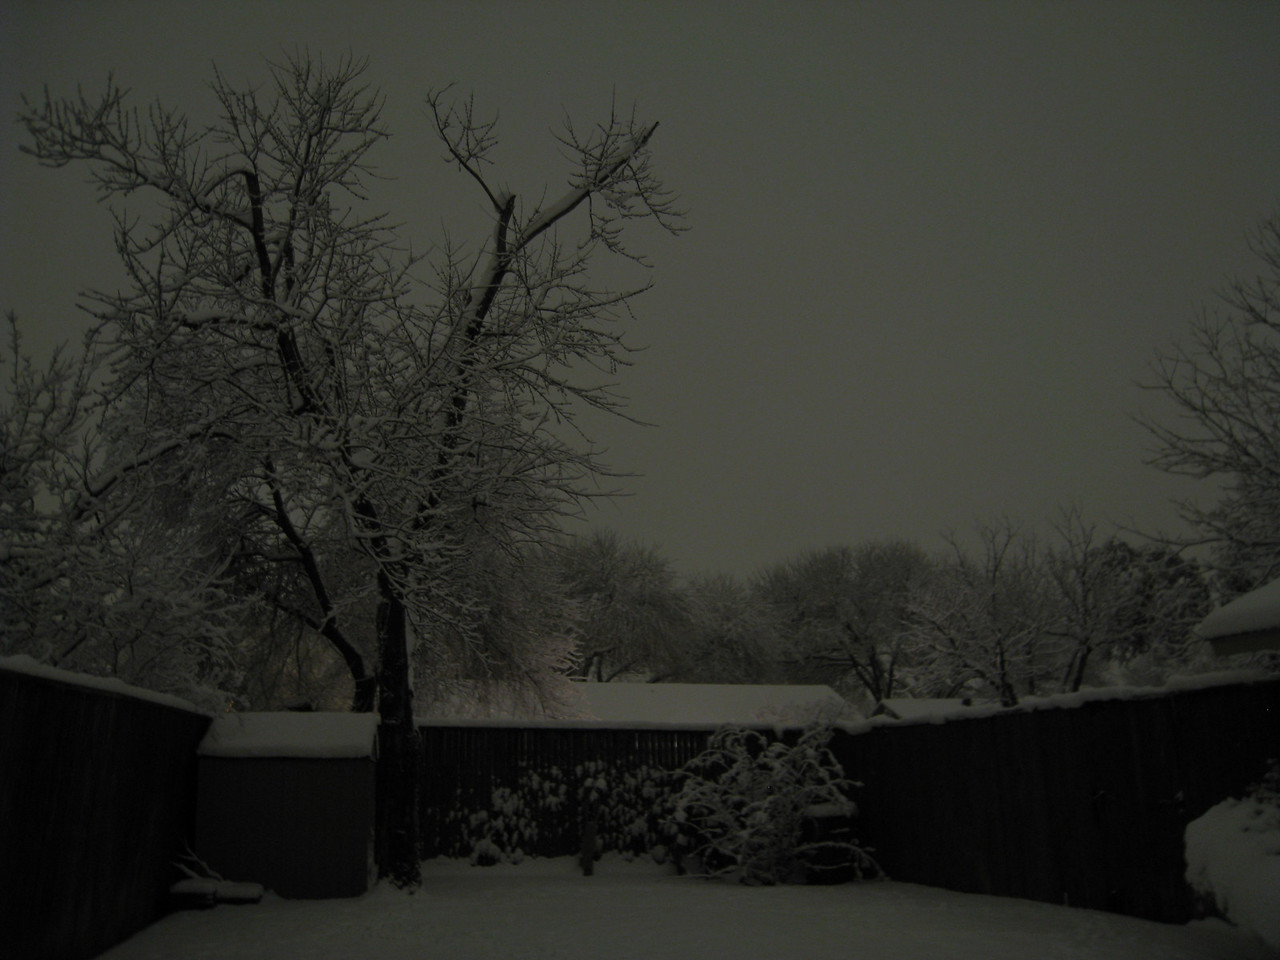 Photo taken at 10pm in the back yard.